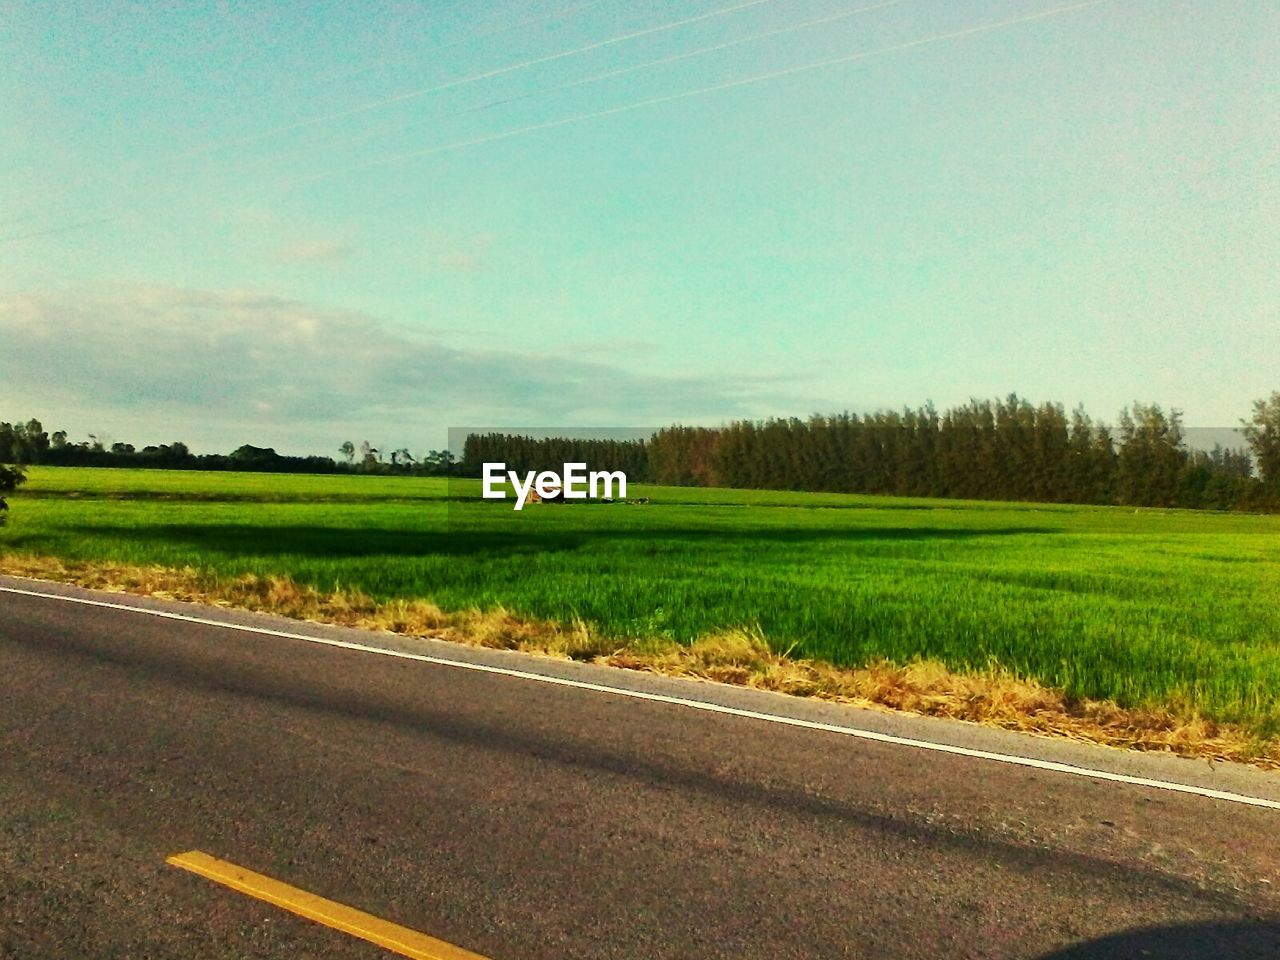 field, grass, road, nature, landscape, green color, no people, day, agriculture, transportation, scenics, tranquil scene, tree, growth, outdoors, rural scene, beauty in nature, tranquility, sky, plant